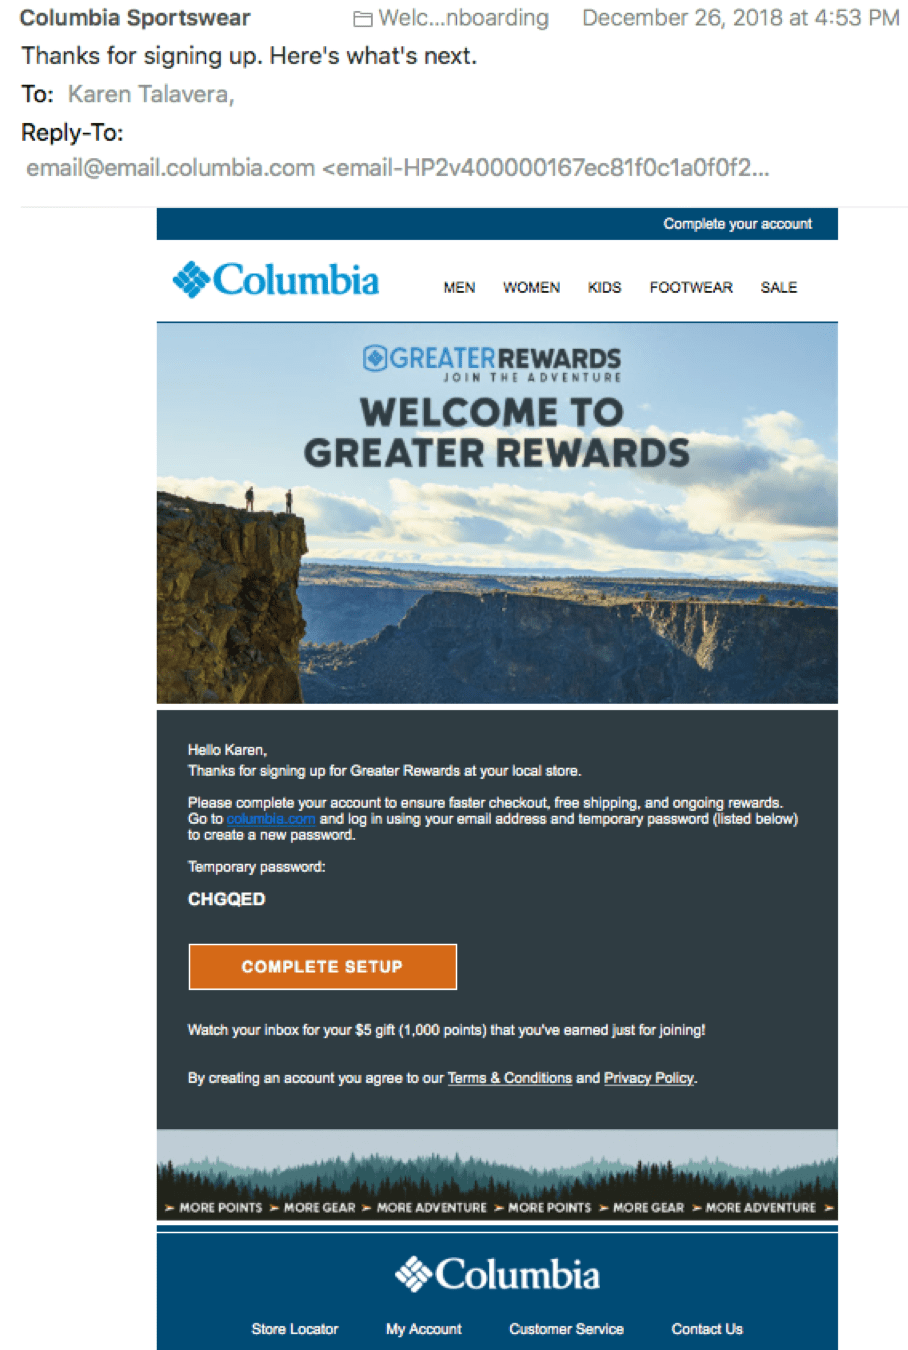 Columbia Sportswear Signup in Store - Account Completion